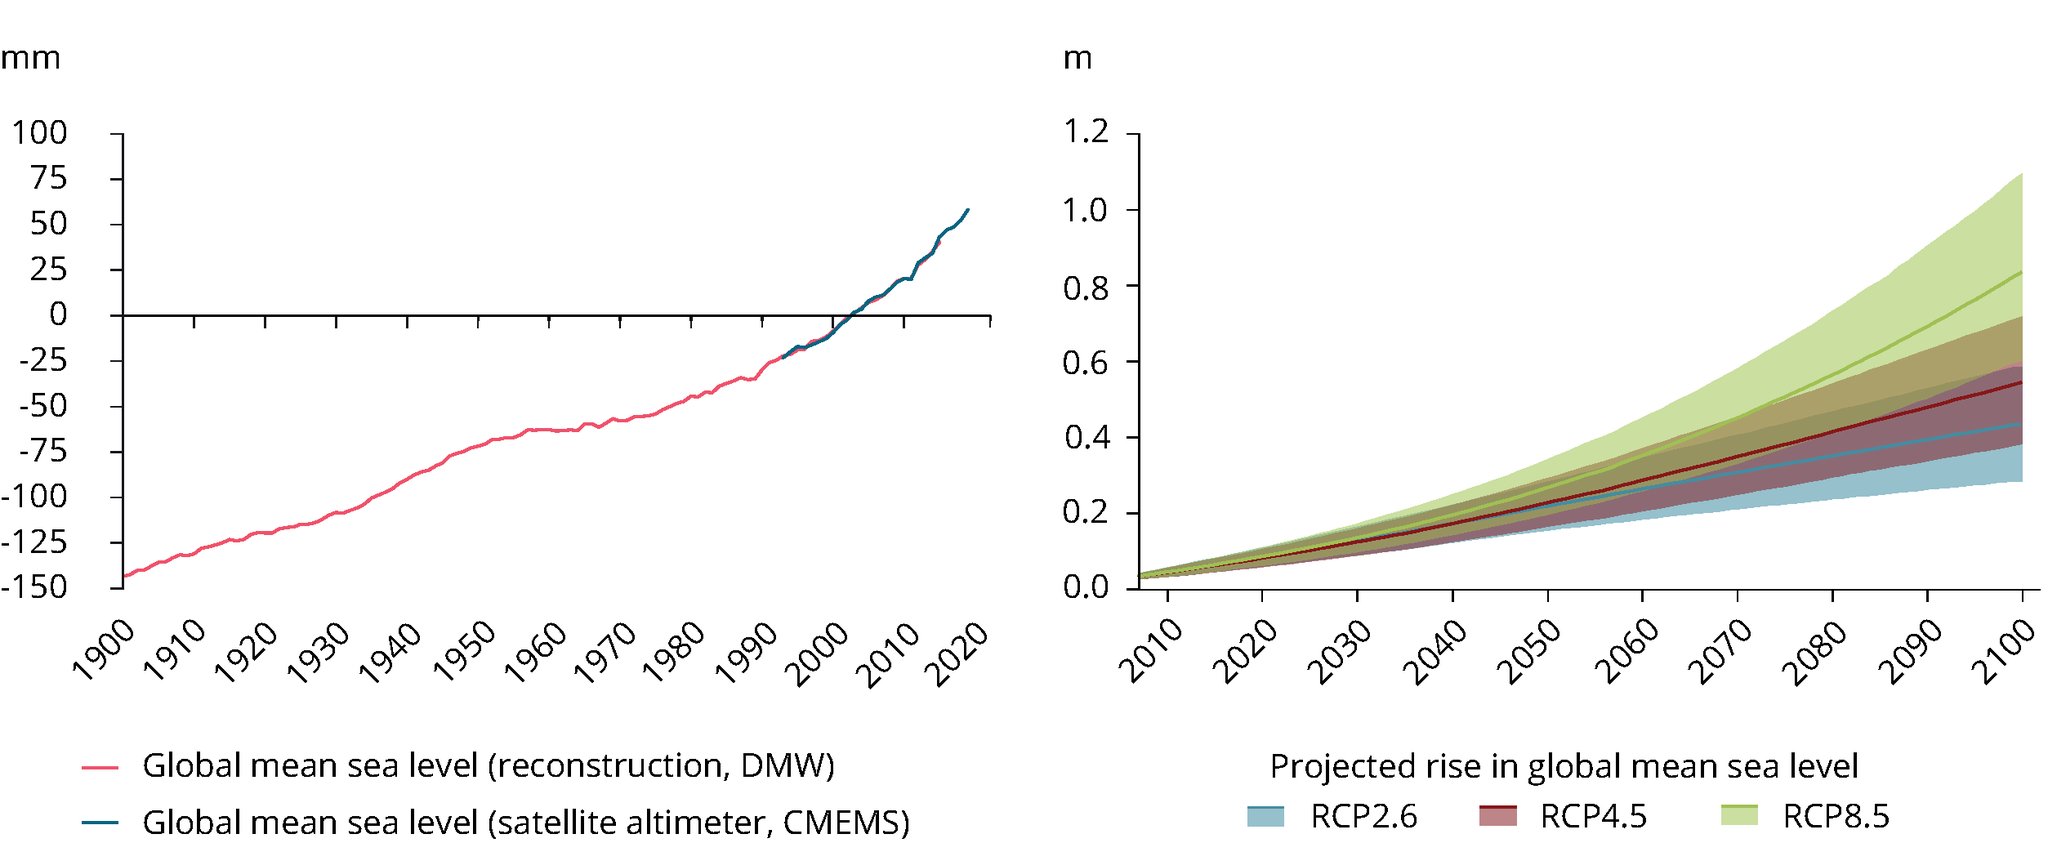 Observed and projected change in global mean sea level